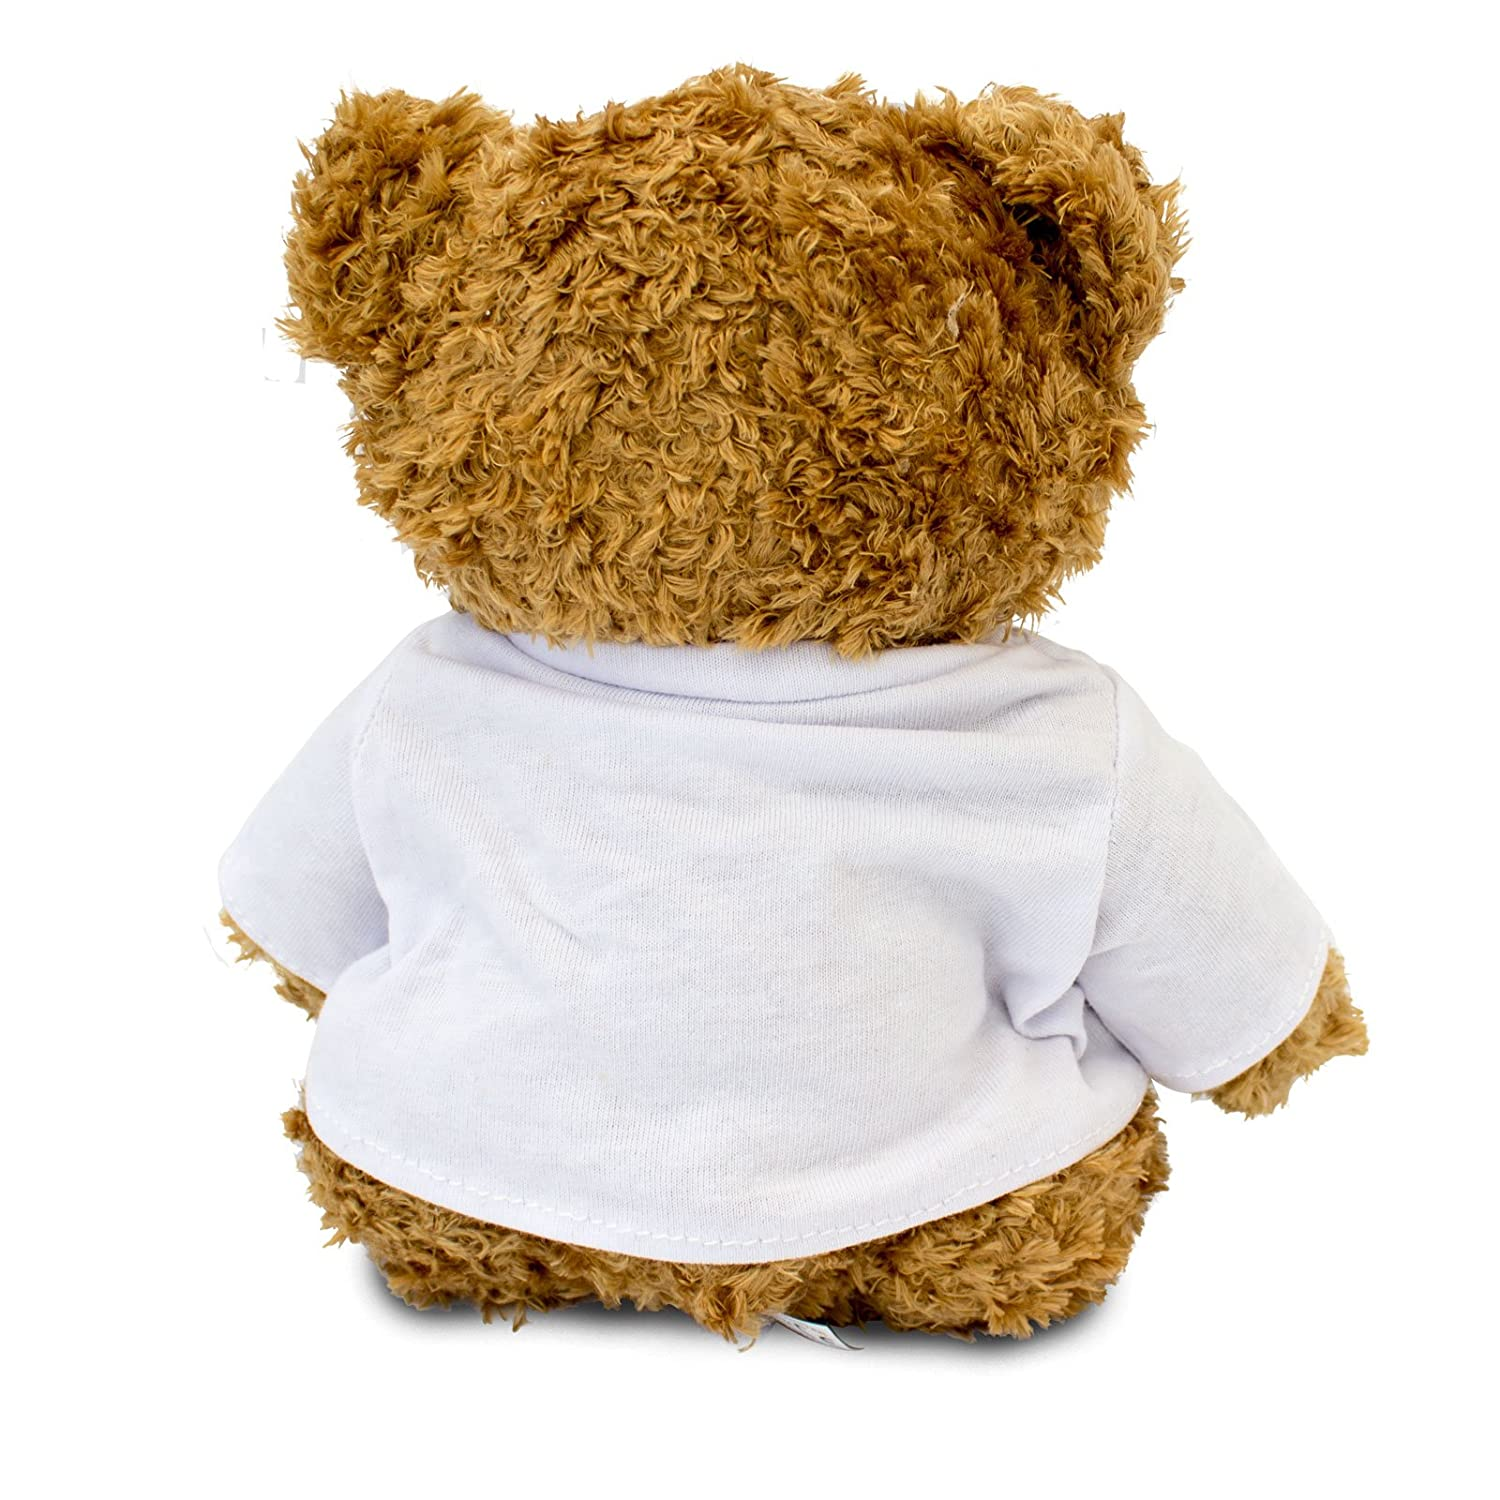 Amazon.com: NEW Thank You Teacher - Cuddly Teddy Bear - Gift Present To Say Thanks Teacher: Toys & Games